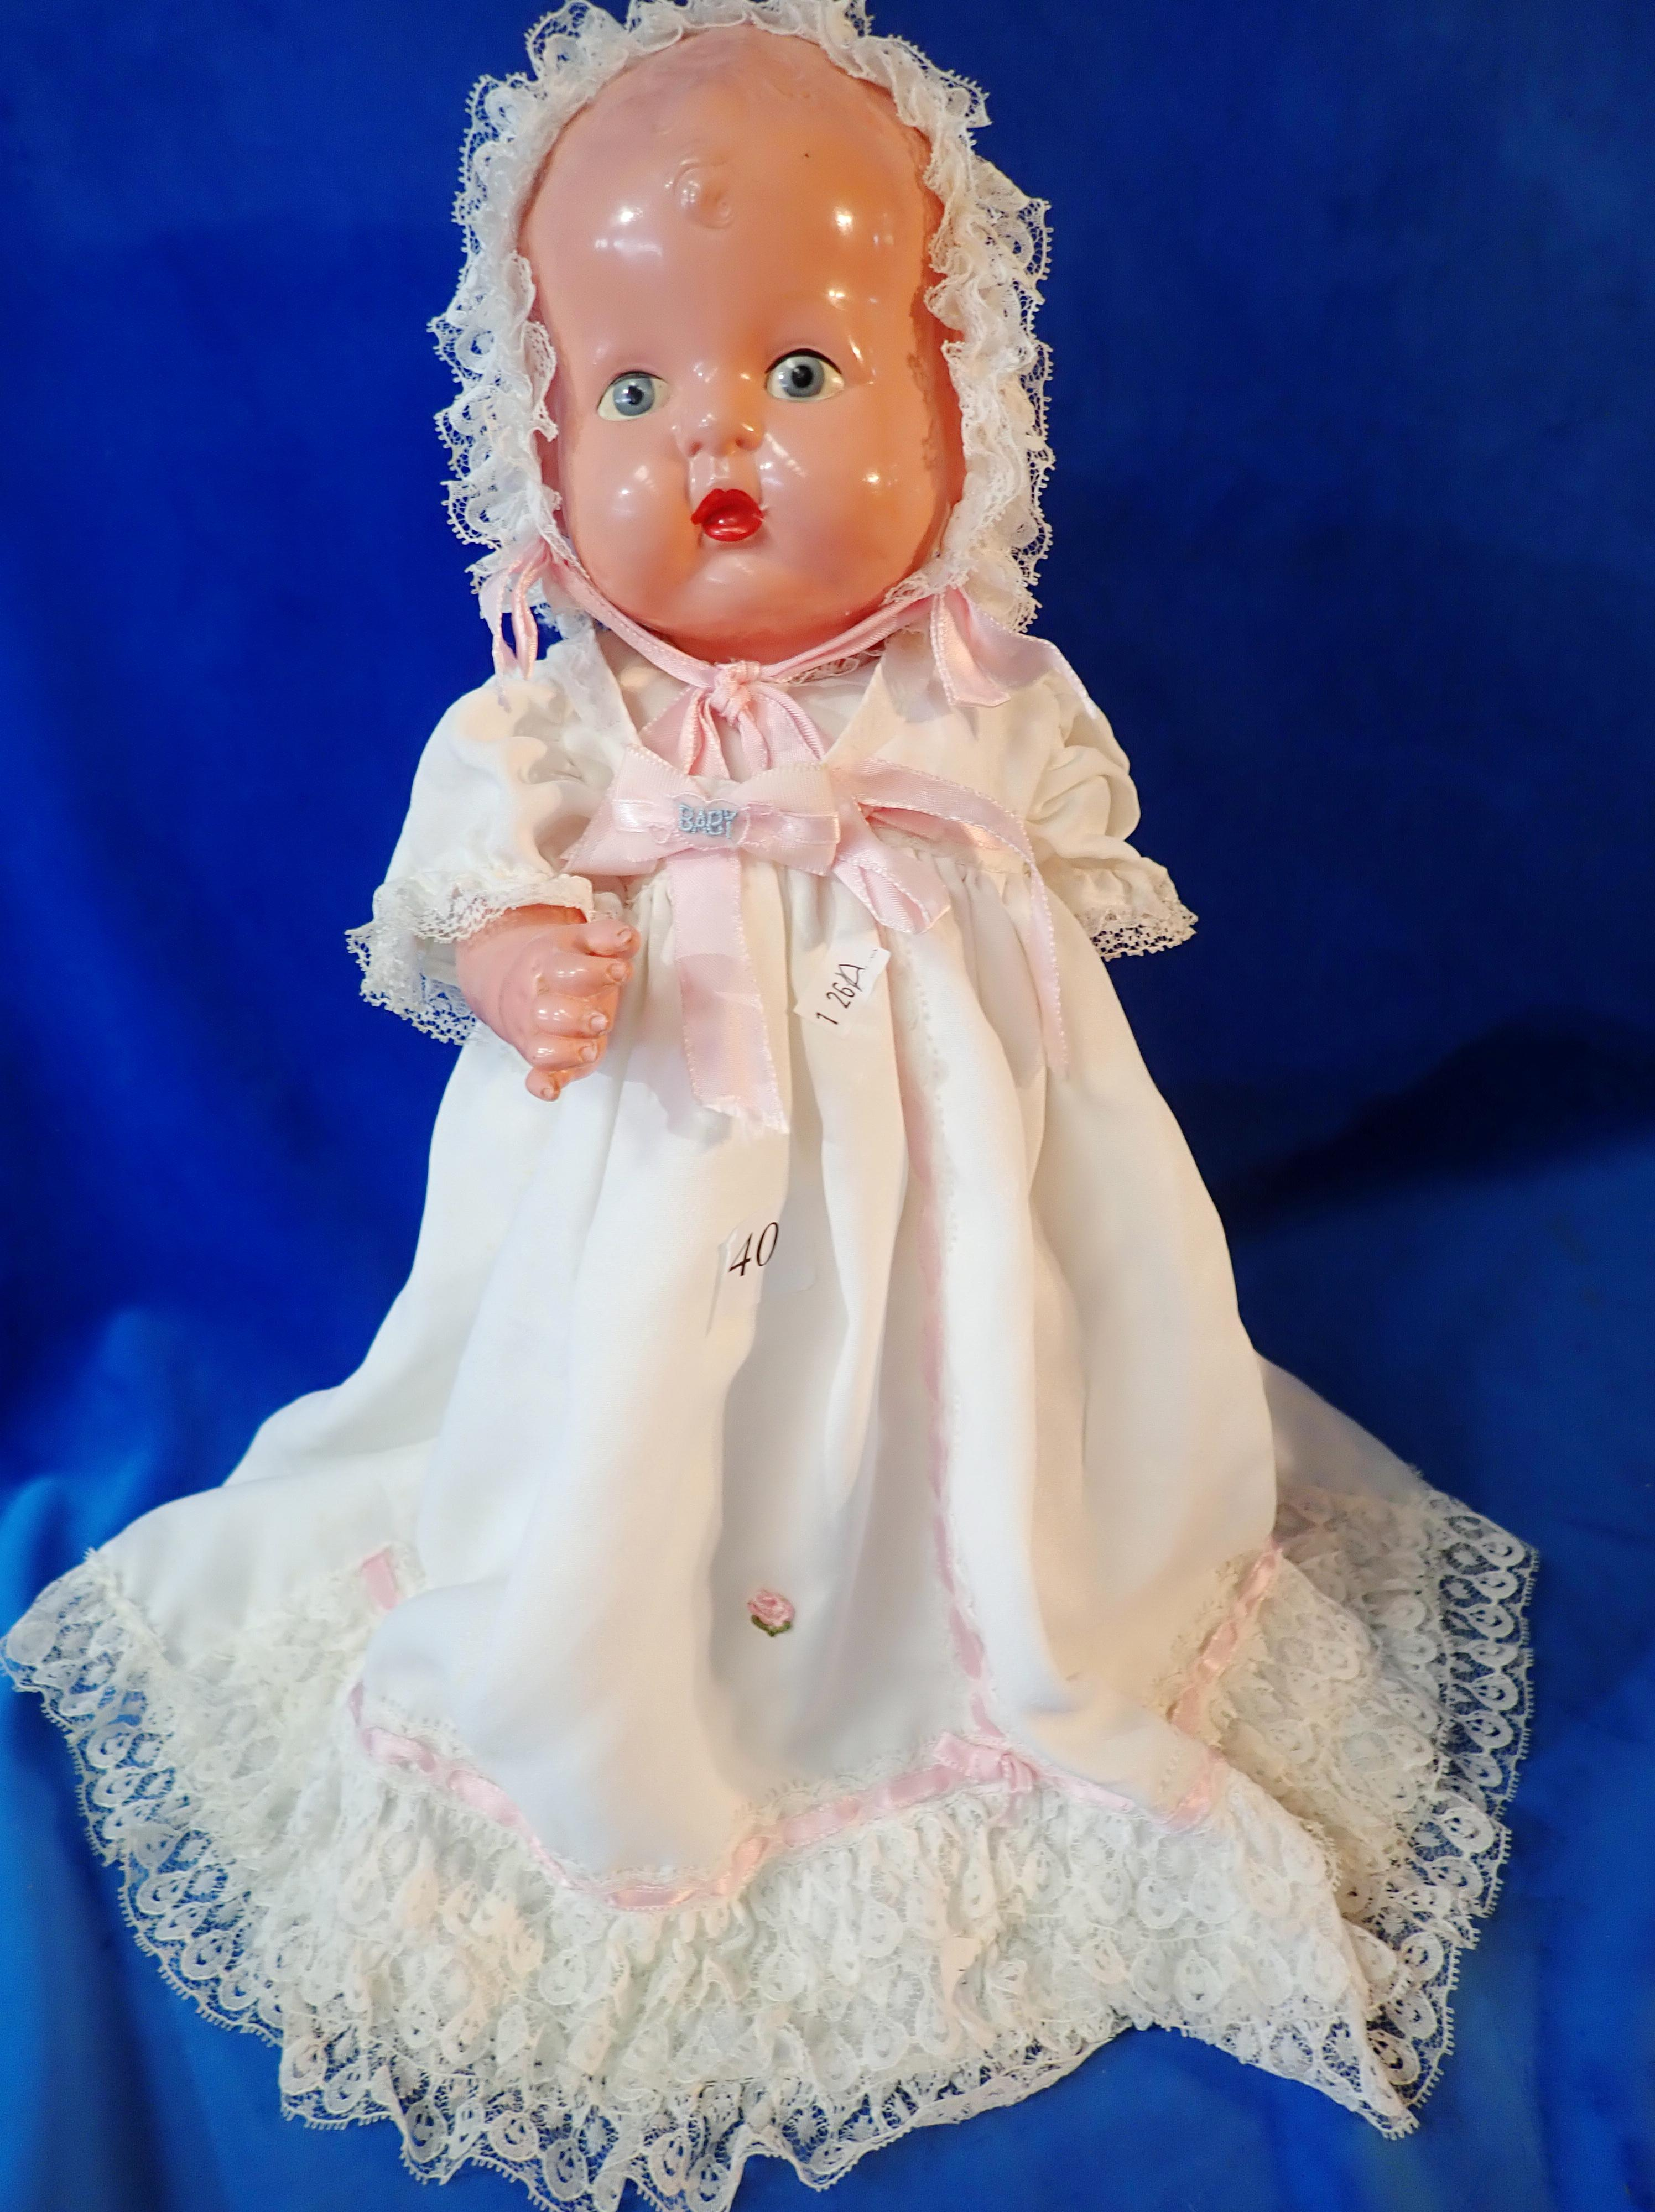 "CELLULOID DOLL ""SONNY BABY"" - MADE IN JAPAN - 14 INCH LONG - IN CHRISTENING OUTFIT - INDENT ON LEG AND TUMMY"